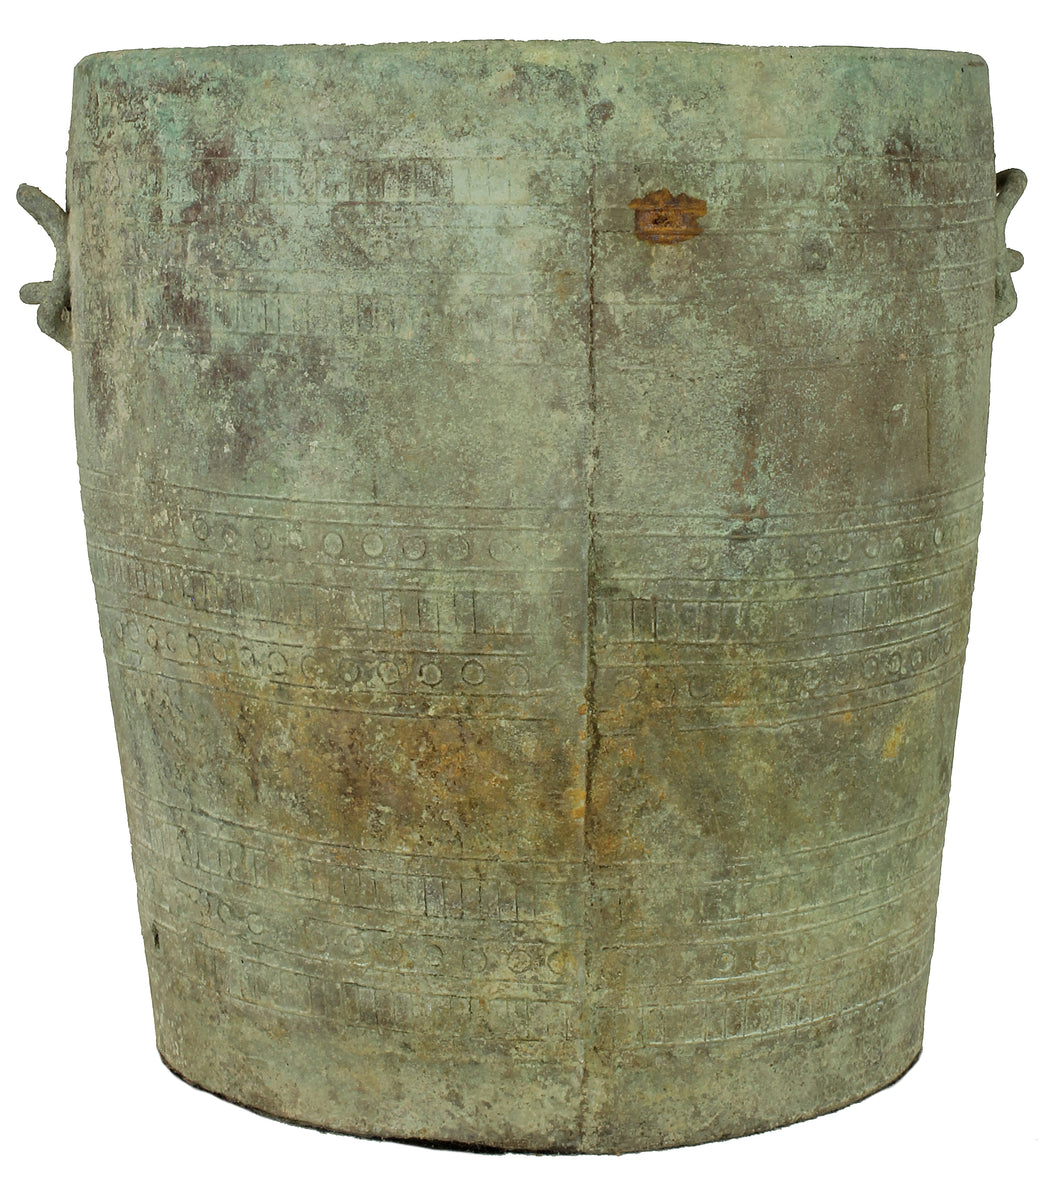 Historic Dong Son Bronze Container/Bucket Artifact from Bronze Age - 2000+ Years Old - Niger Bend